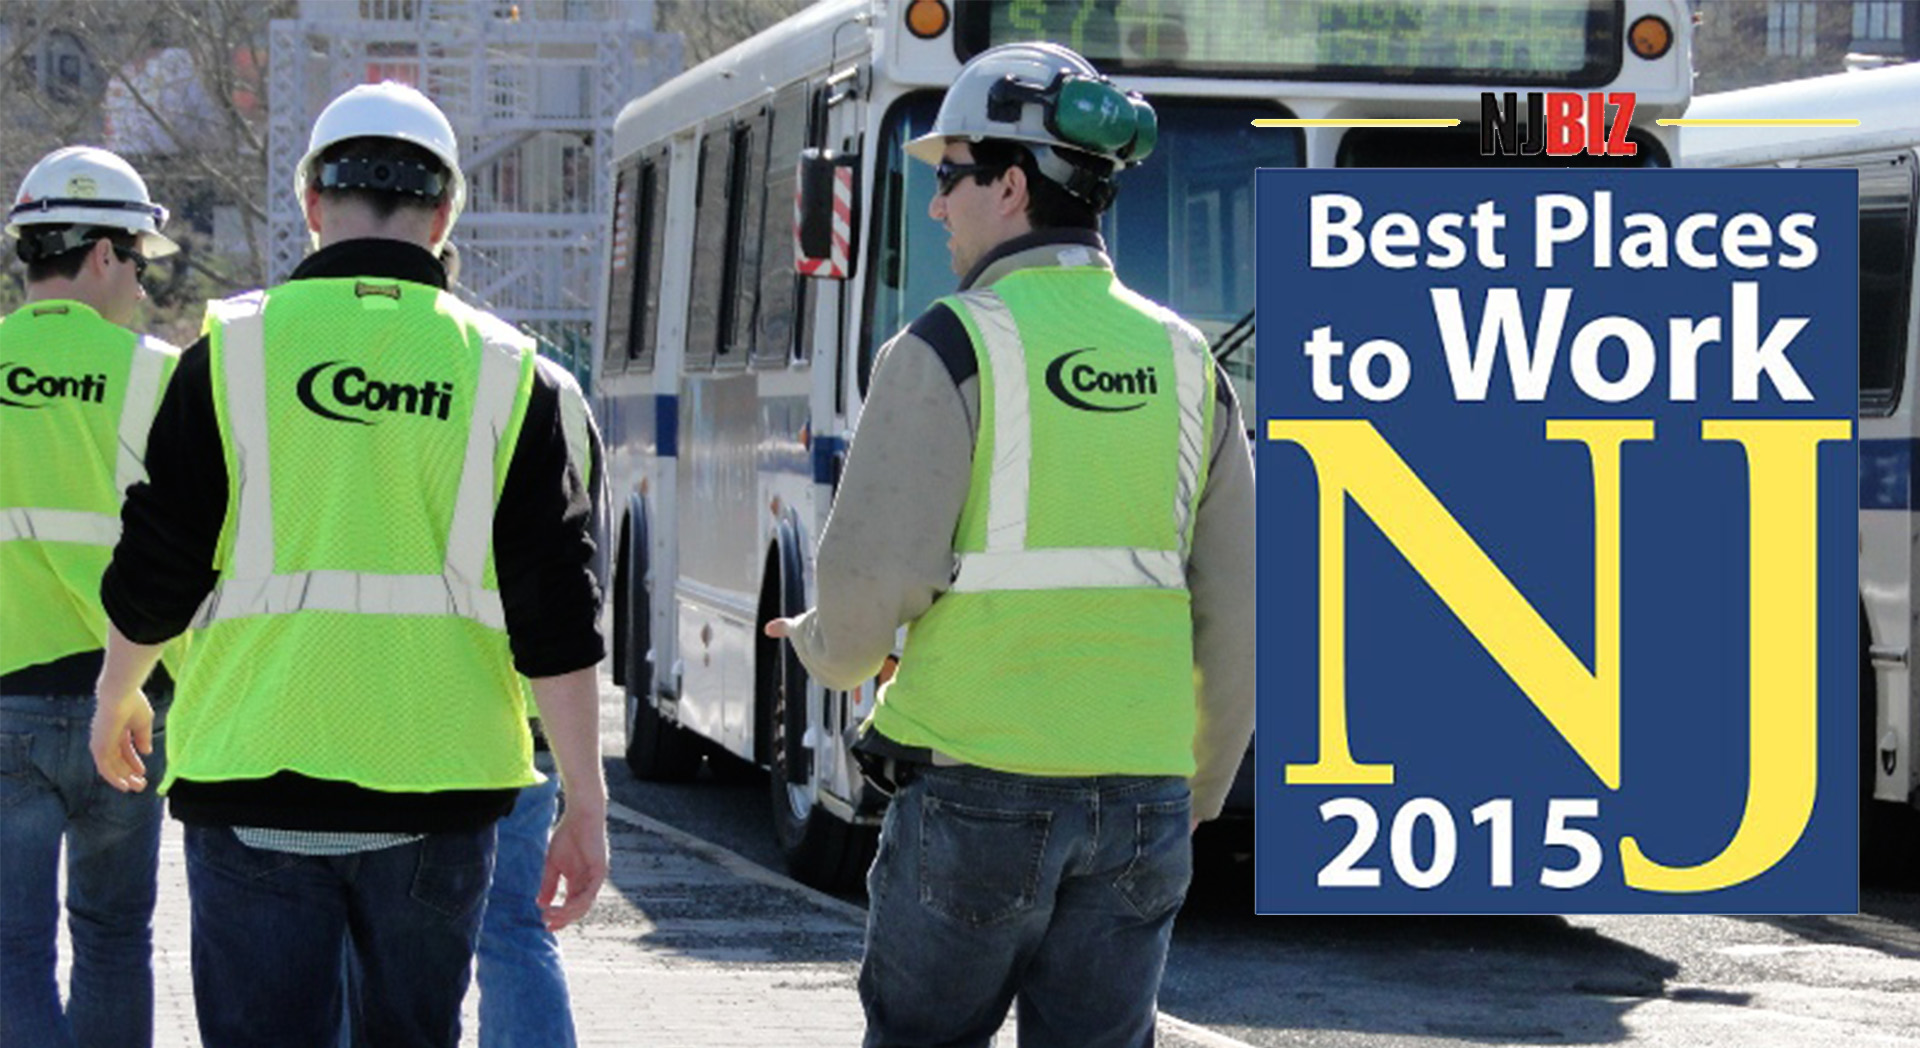 Conti Wins Fourth Best Places to Work Award